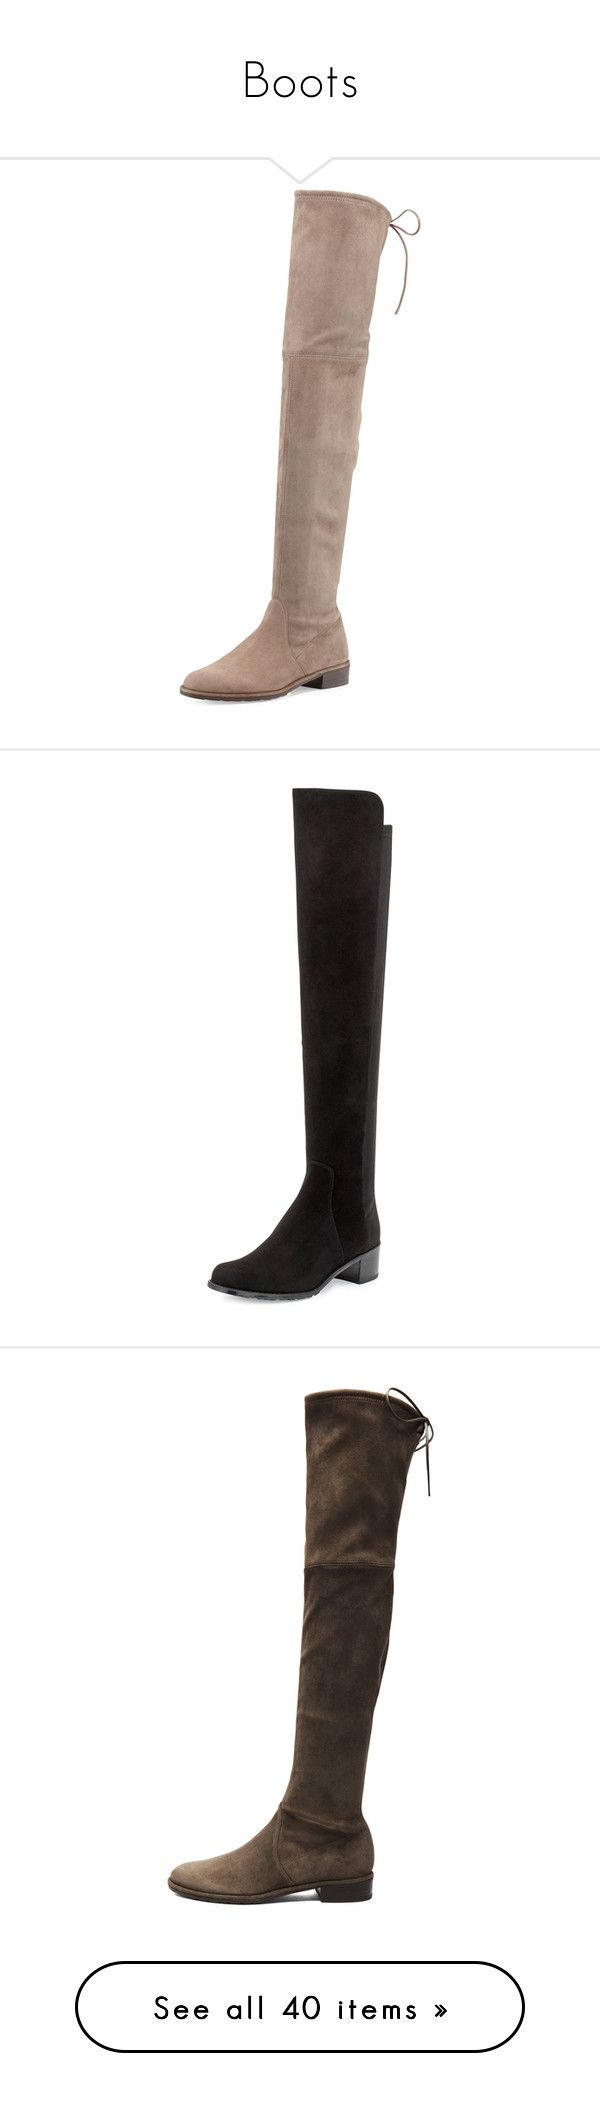 """""""Boots"""" by tdctje ❤ liked on Polyvore featuring shoes, boots, shoes and boots, praline, shoes boots, over-the-knee suede boots, stretch thigh high boots, flat suede boots, stuart weitzman boots and flat boots"""